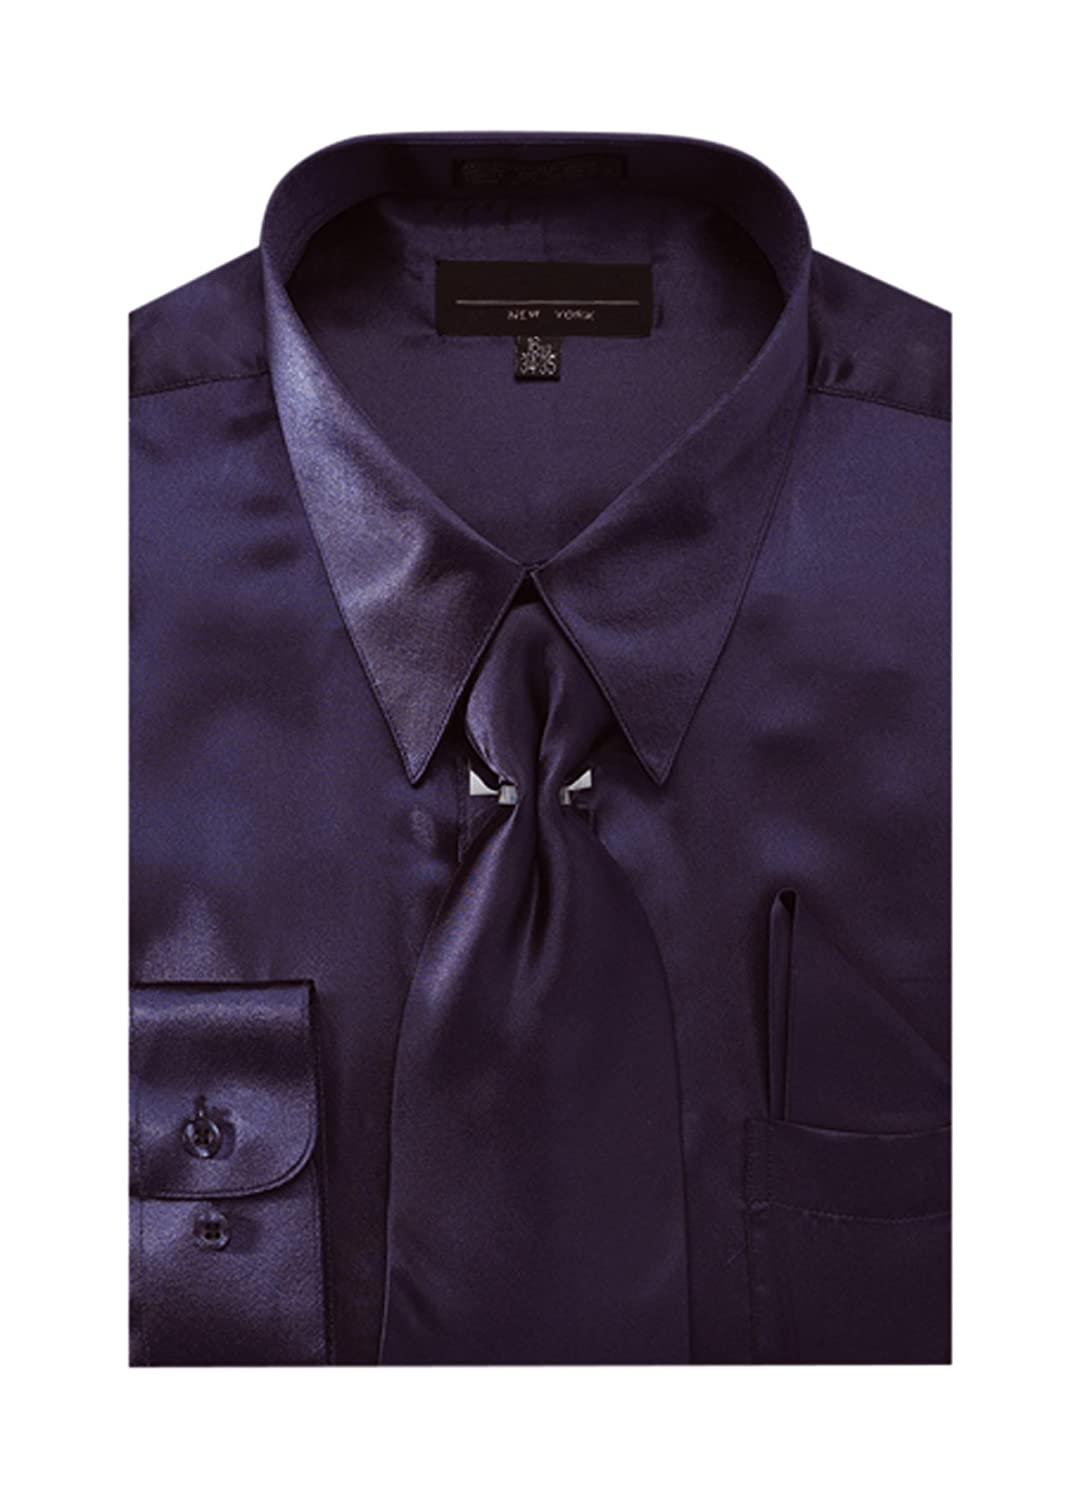 Mens Solid Color Satin Dress Shirt Tie And Hanky Set At Amazon